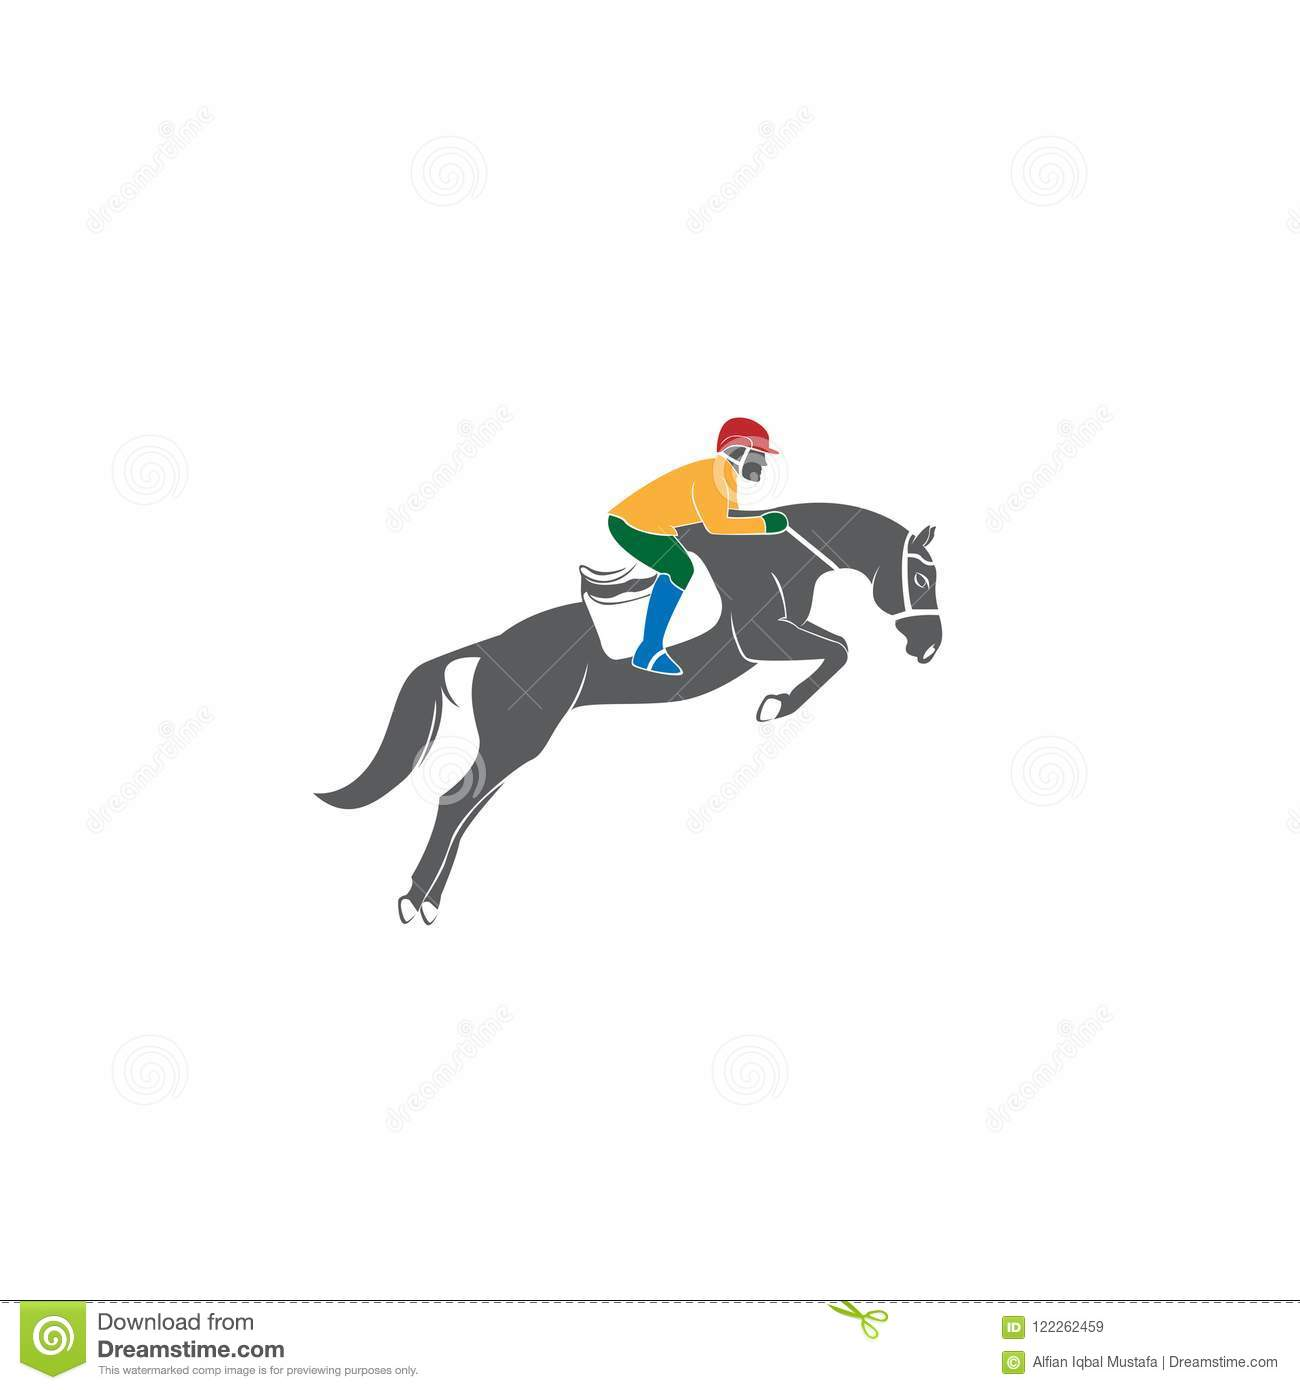 Jumping Horse Silhouette Logo Vector Design Template Illustration Of Horse Race Stylized Symbol Jockey Riding A Horse Emblem Stock Vector Illustration Of Equestrian Outline 122262459